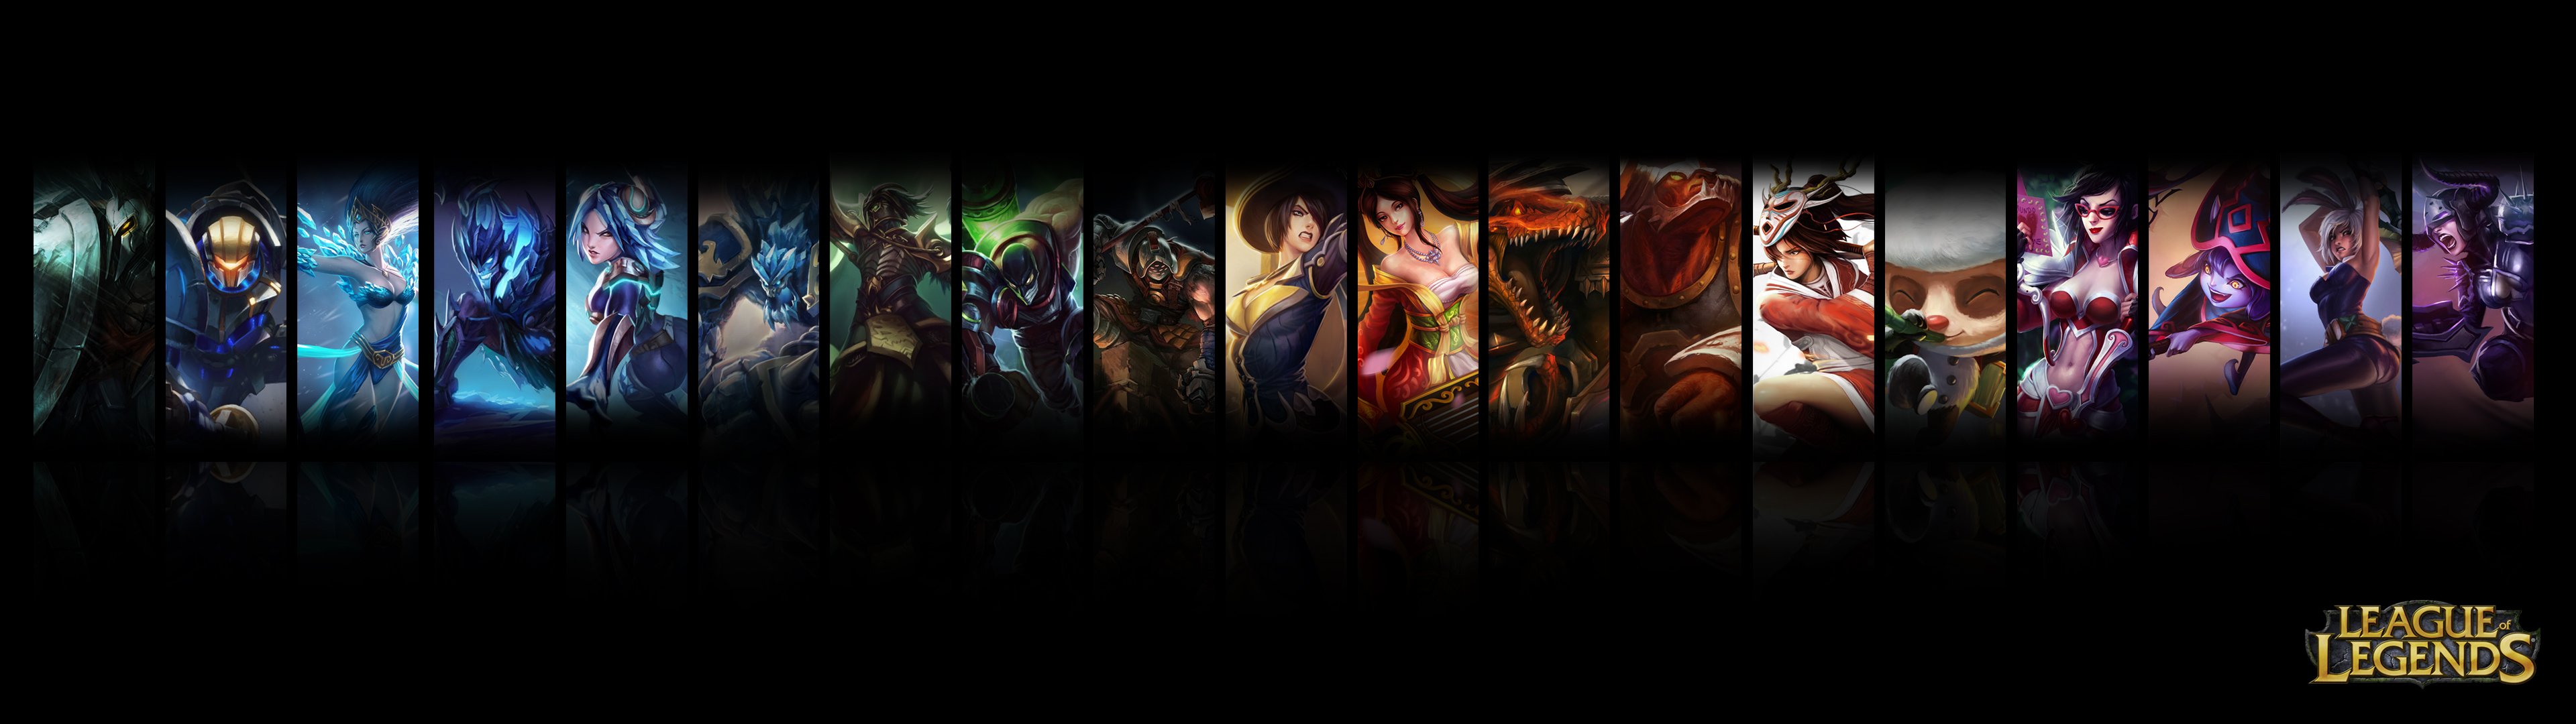 League Of Legends Dual Screen Wallpaper By Jrkdo On Deviantart